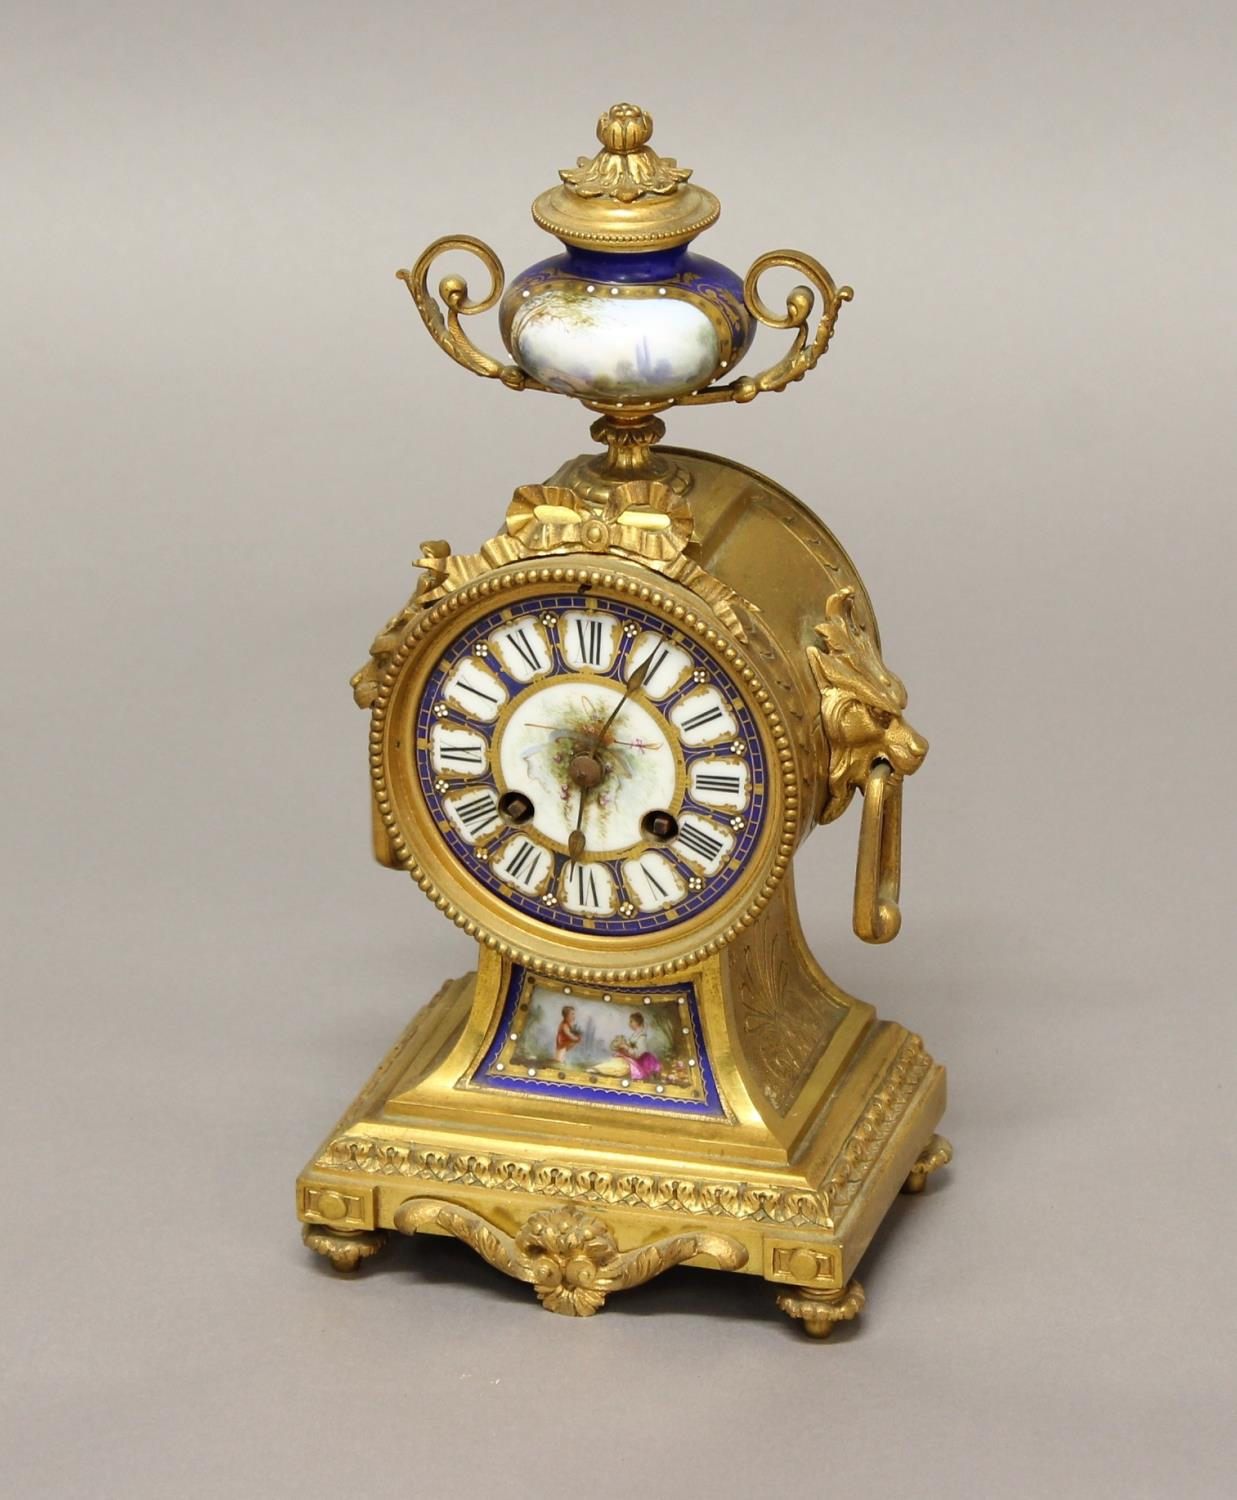 A 19TH CENTURY FRENCH GILT & PORCELAIN MOUNTED MANTEL CLOCK, with a 3 1/2 inch painted porcelain